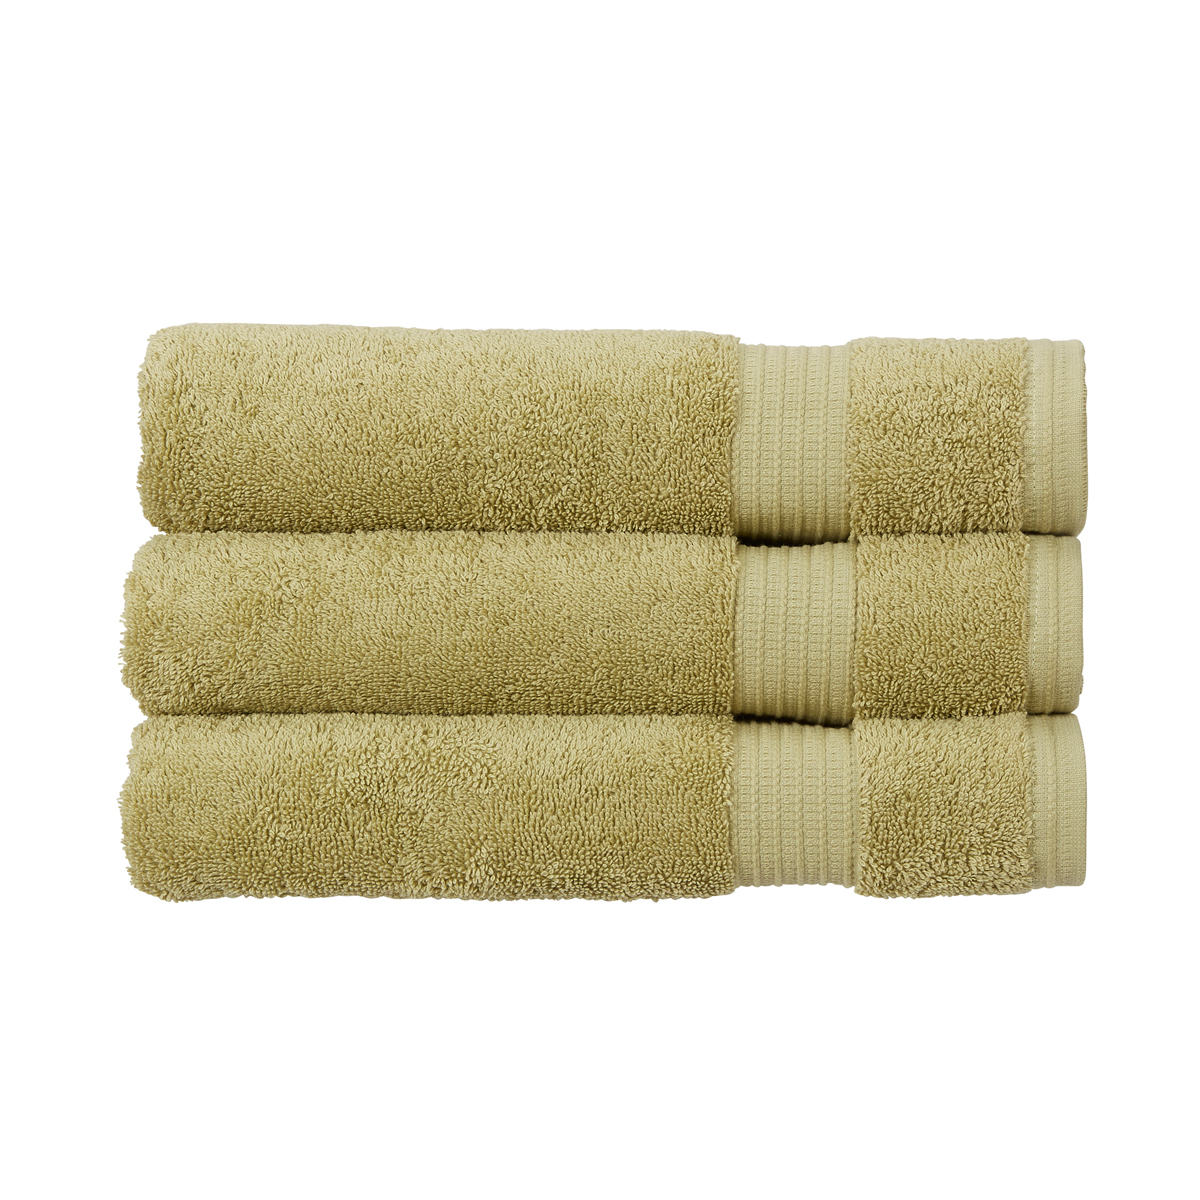 An image of Luxury Cotton Sanctuary Face Cloth in Bamboo (Green) by Christy